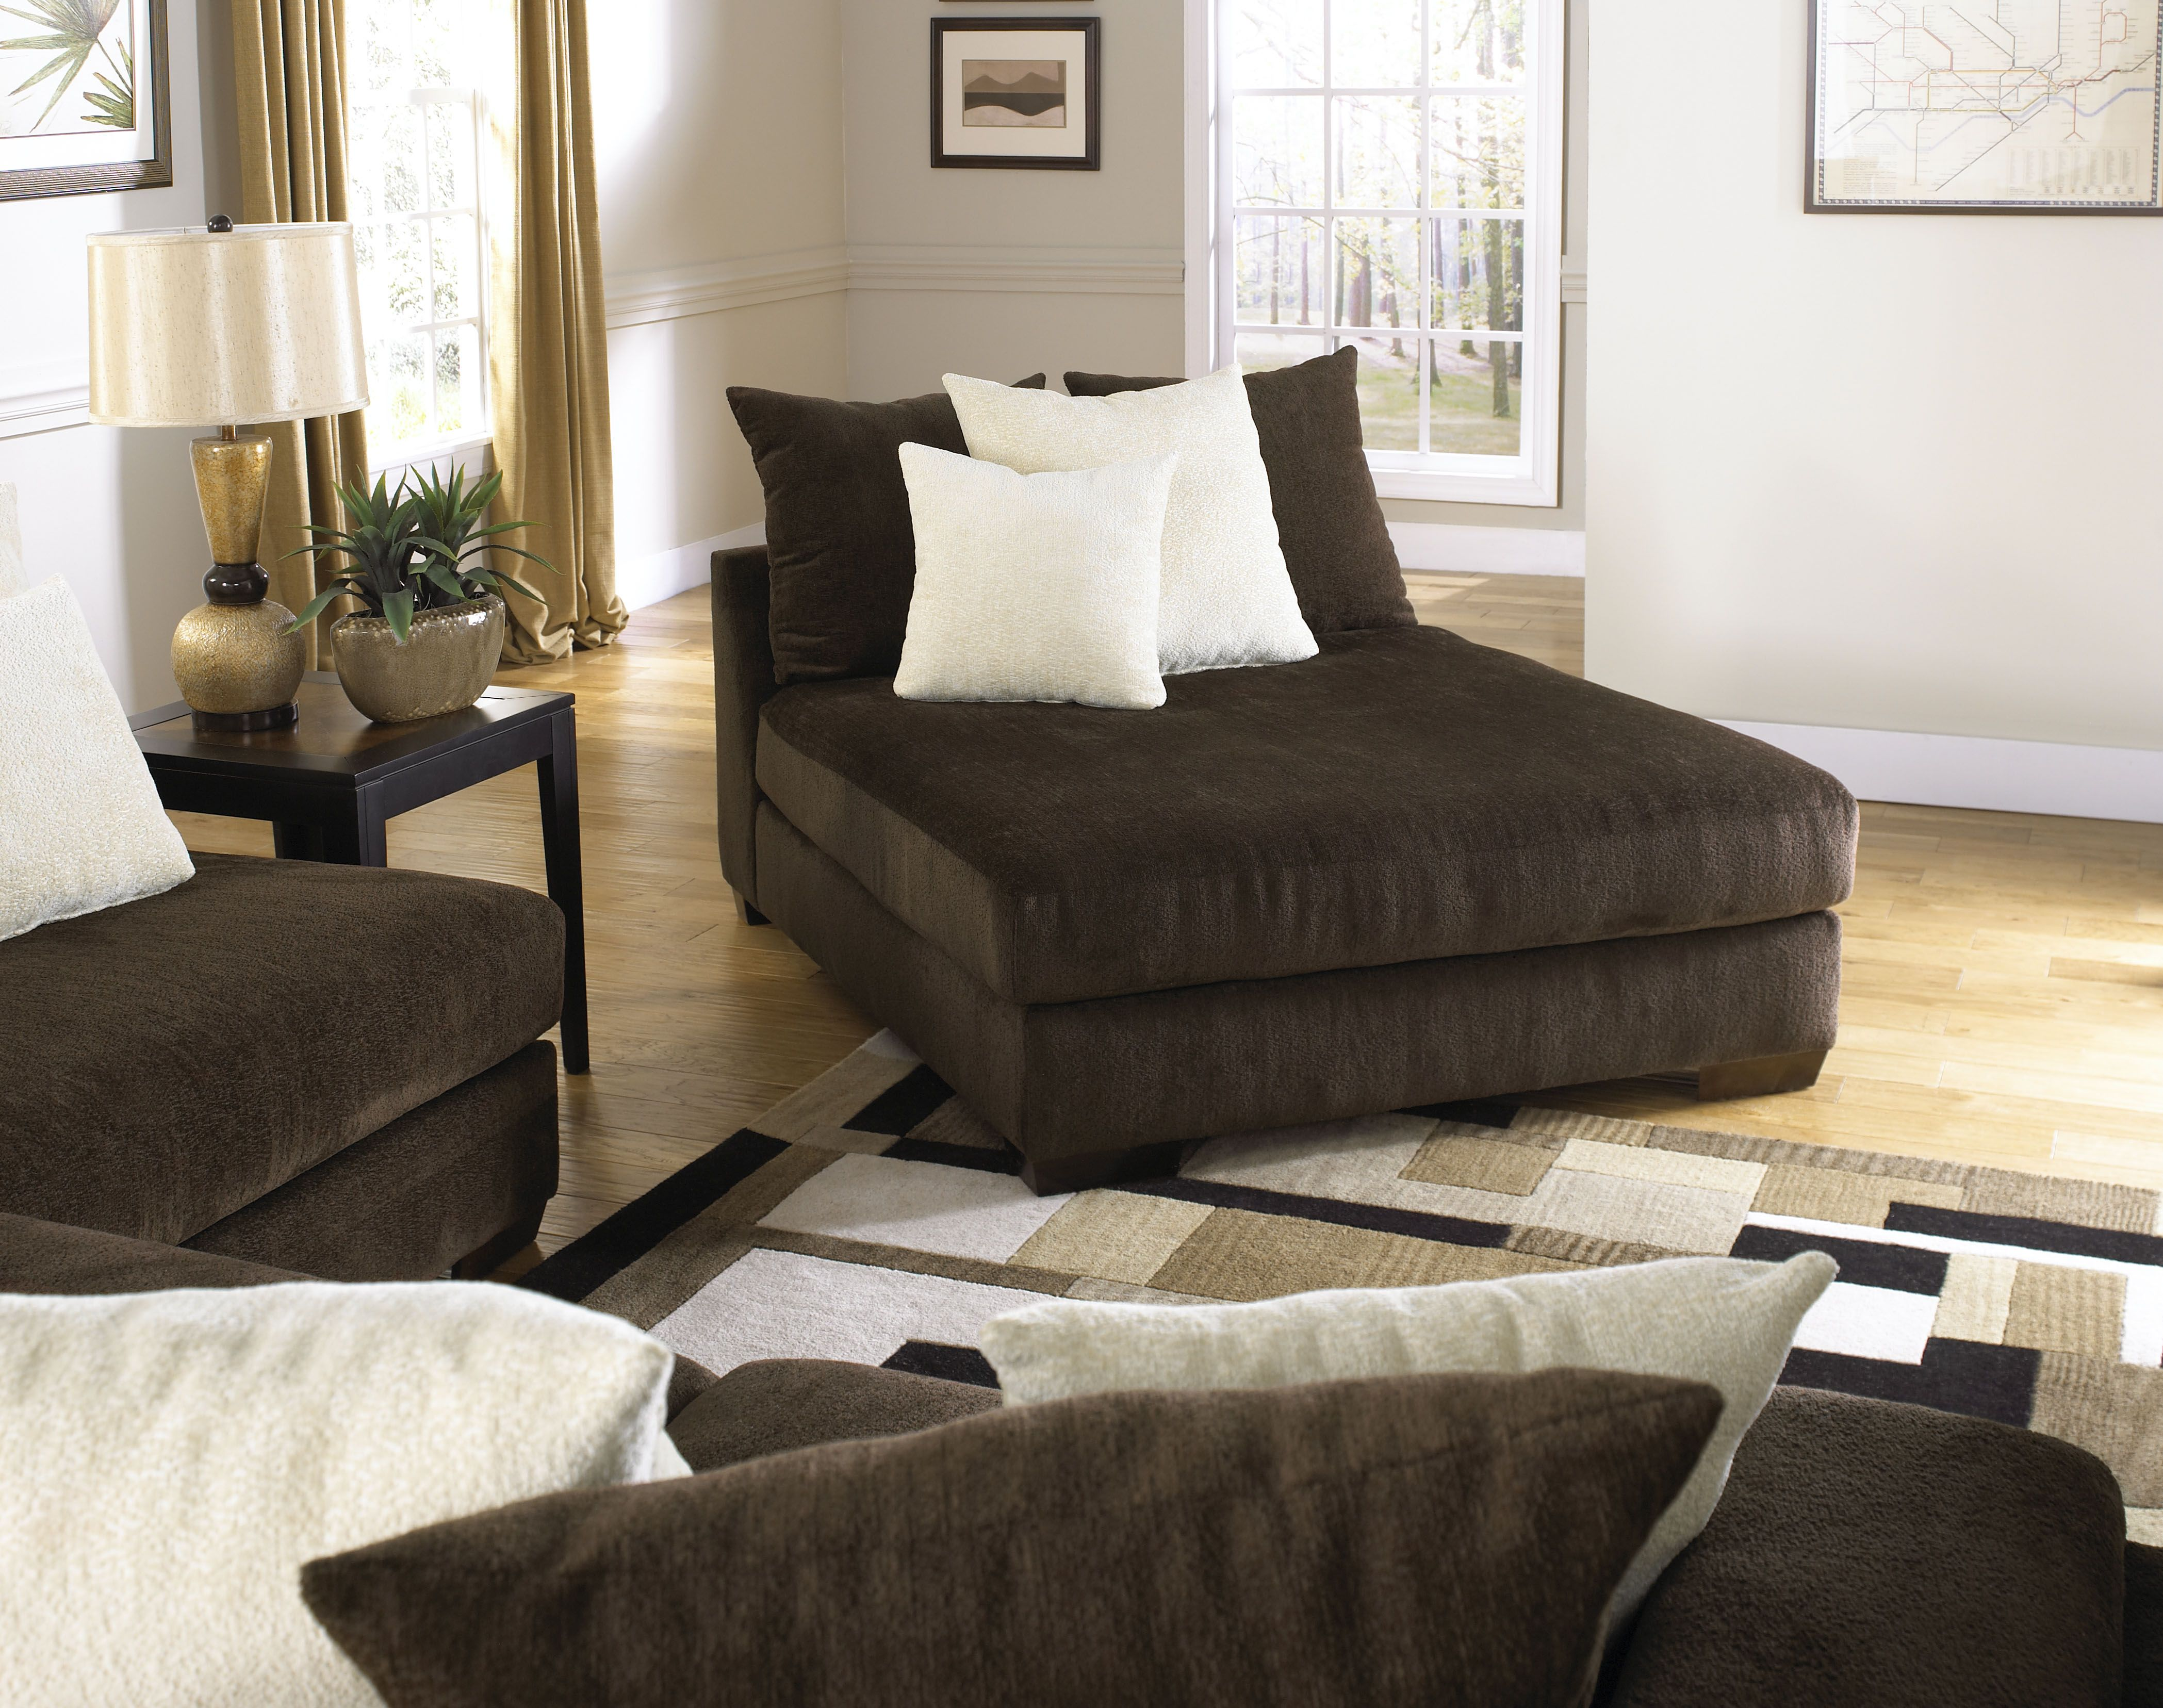 Axis Daybed Furniture Oversized Chaise Lounge Daybed